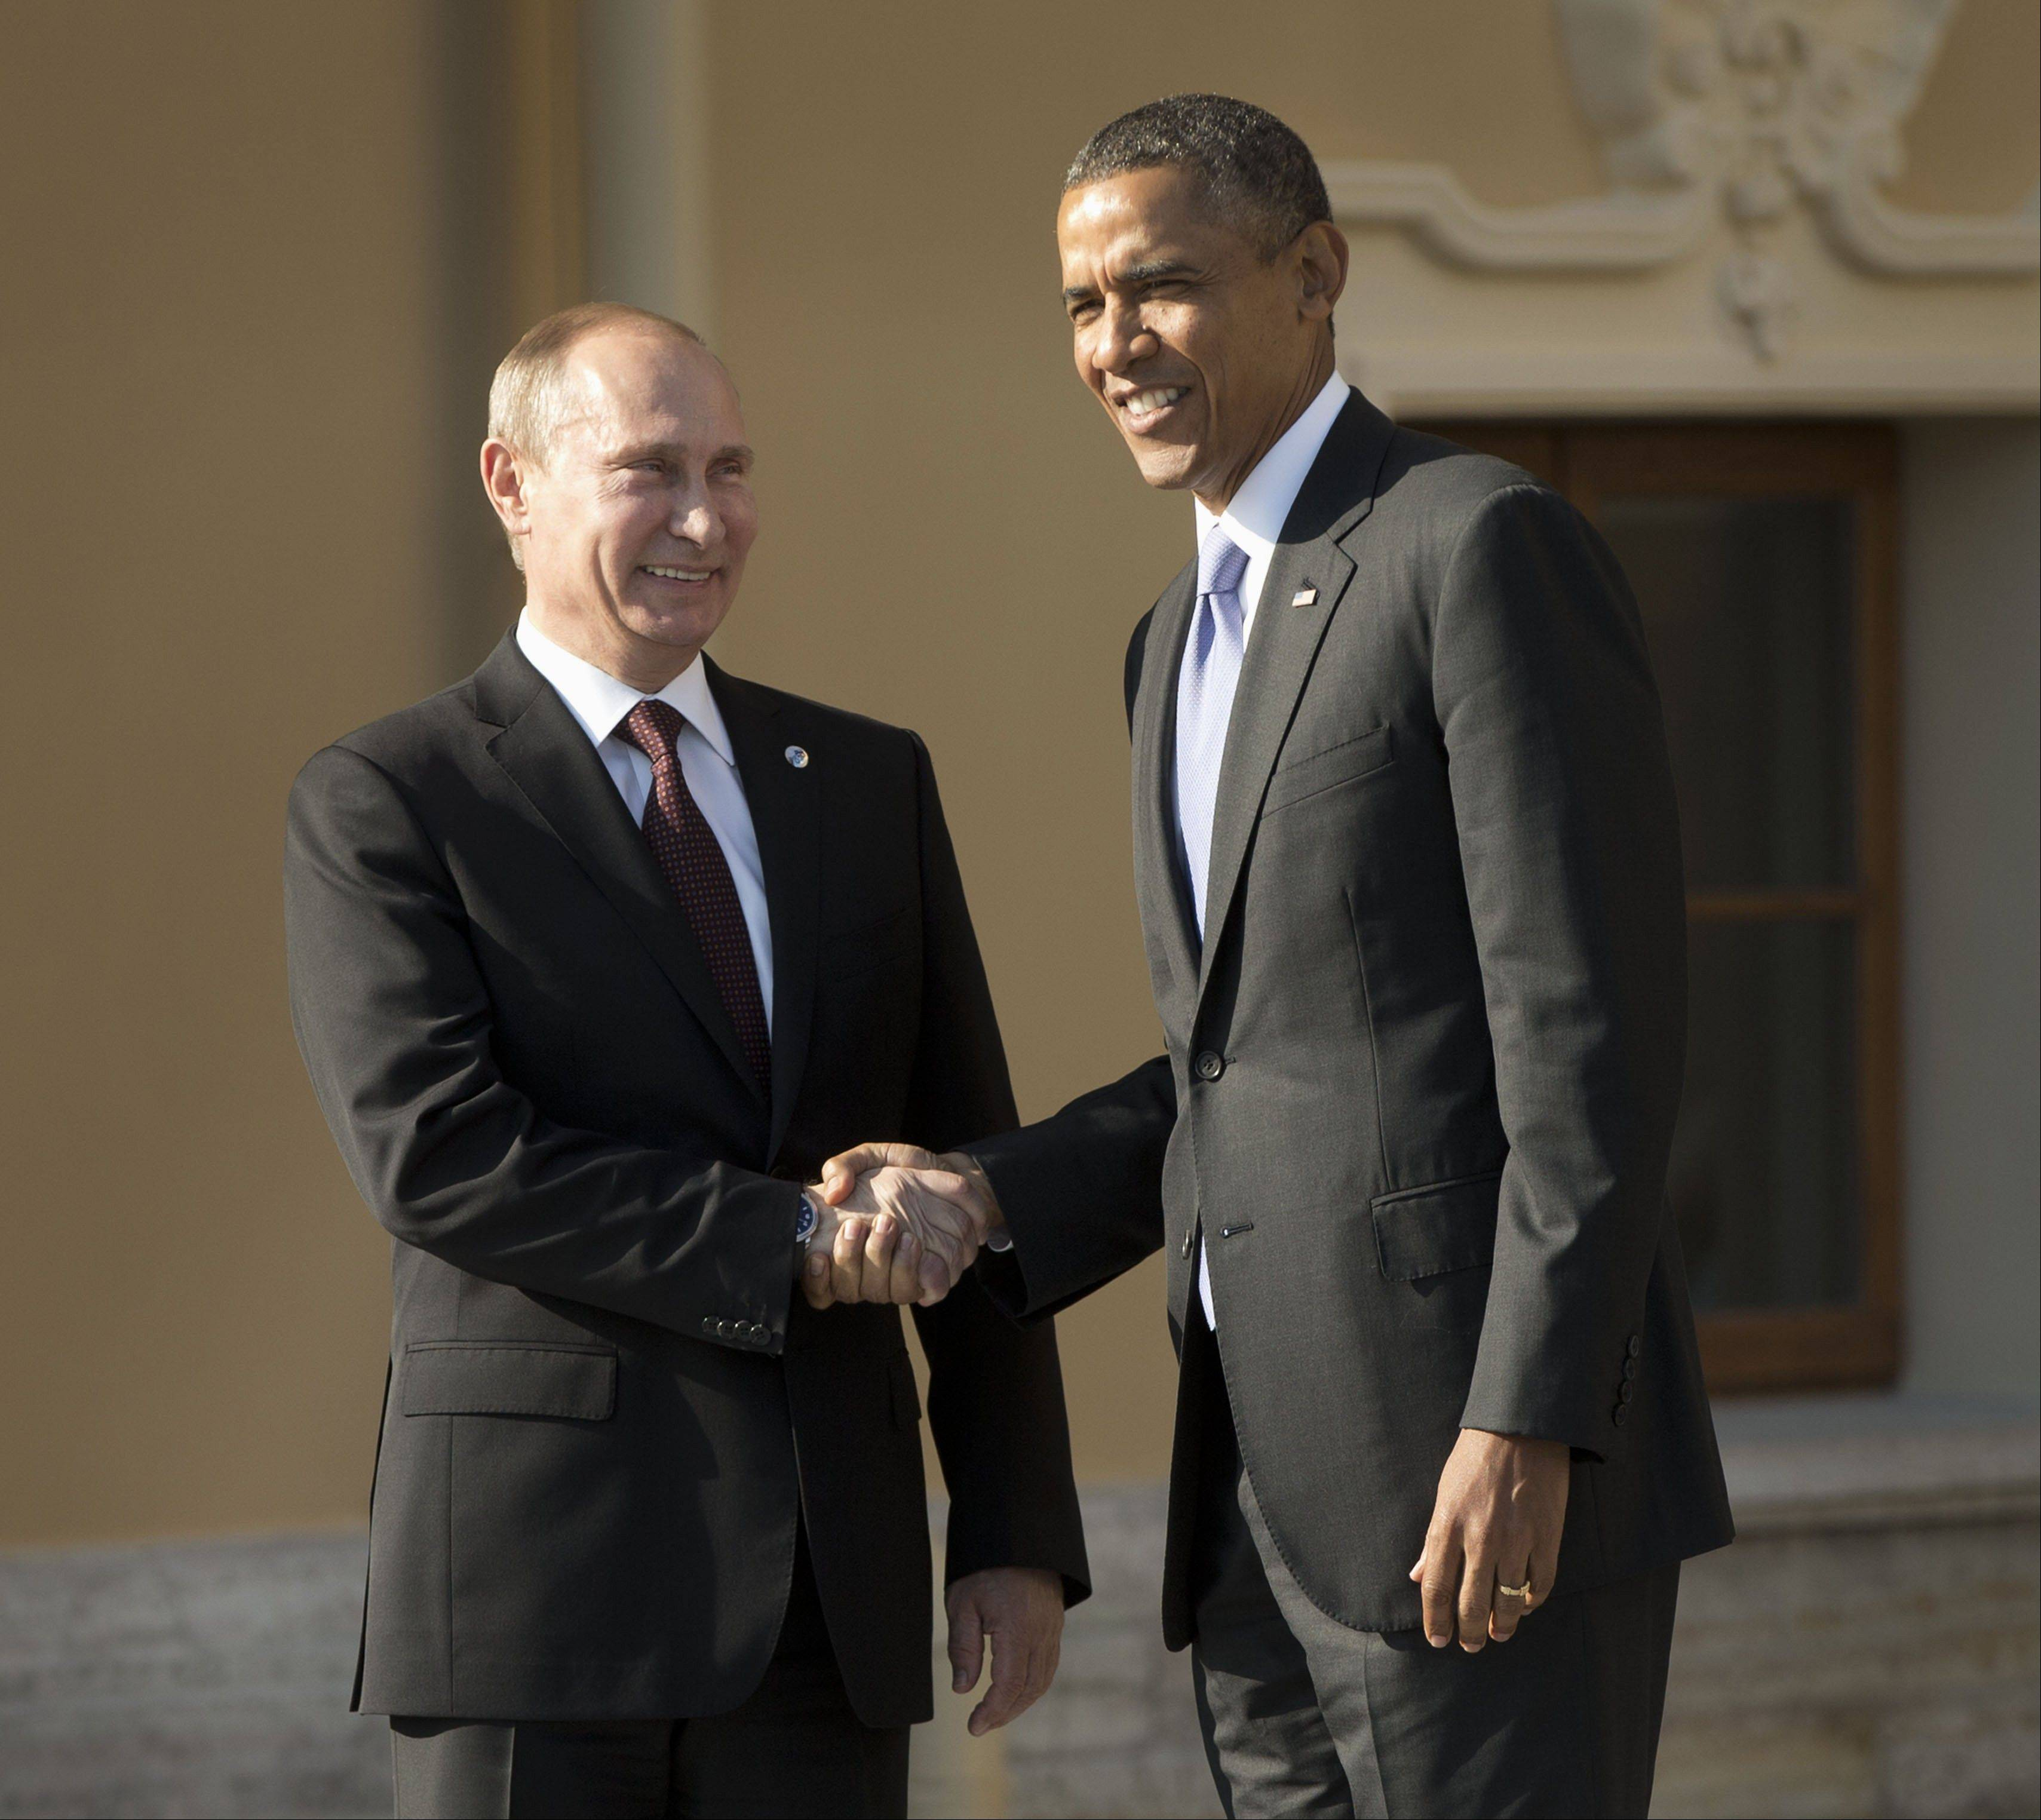 President Barack Obama shakes hands with Russian President Vladimir Putin during arrivals for the G-20 summit at the Konstantin Palace in St. Petersburg, Russia on Thursday, Sept. 5, 2013.